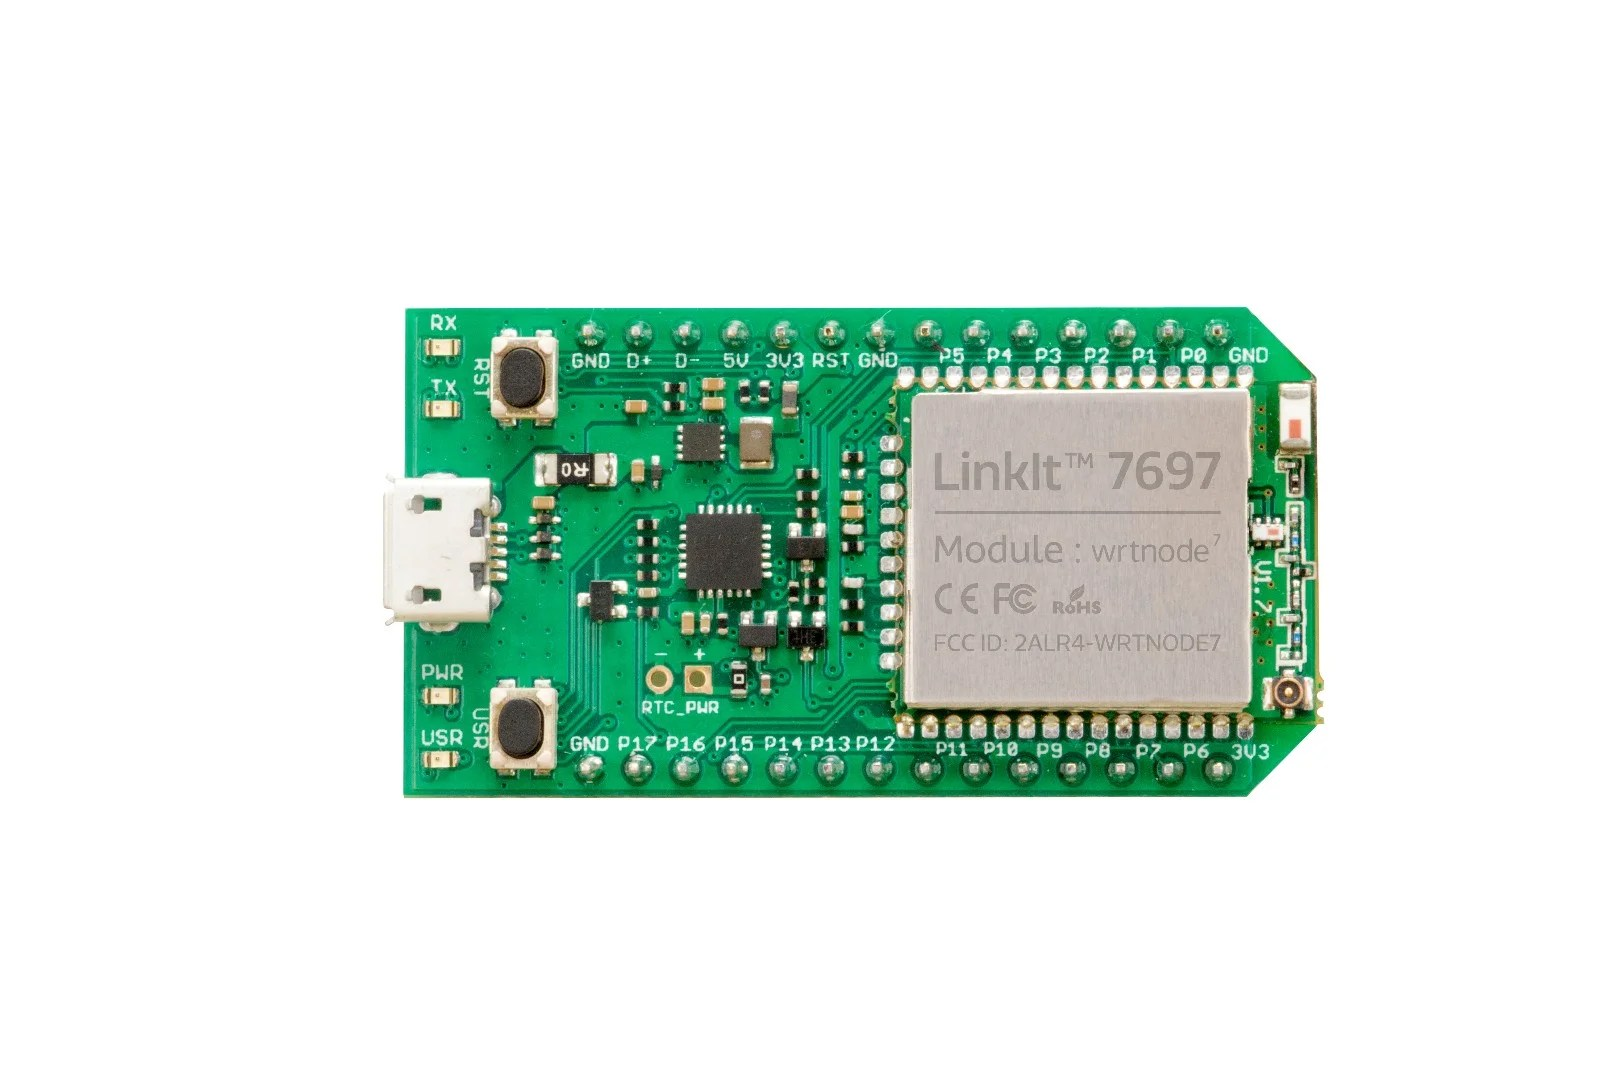 First Steps with the LinkIt 7697 - Squix - TechBlog